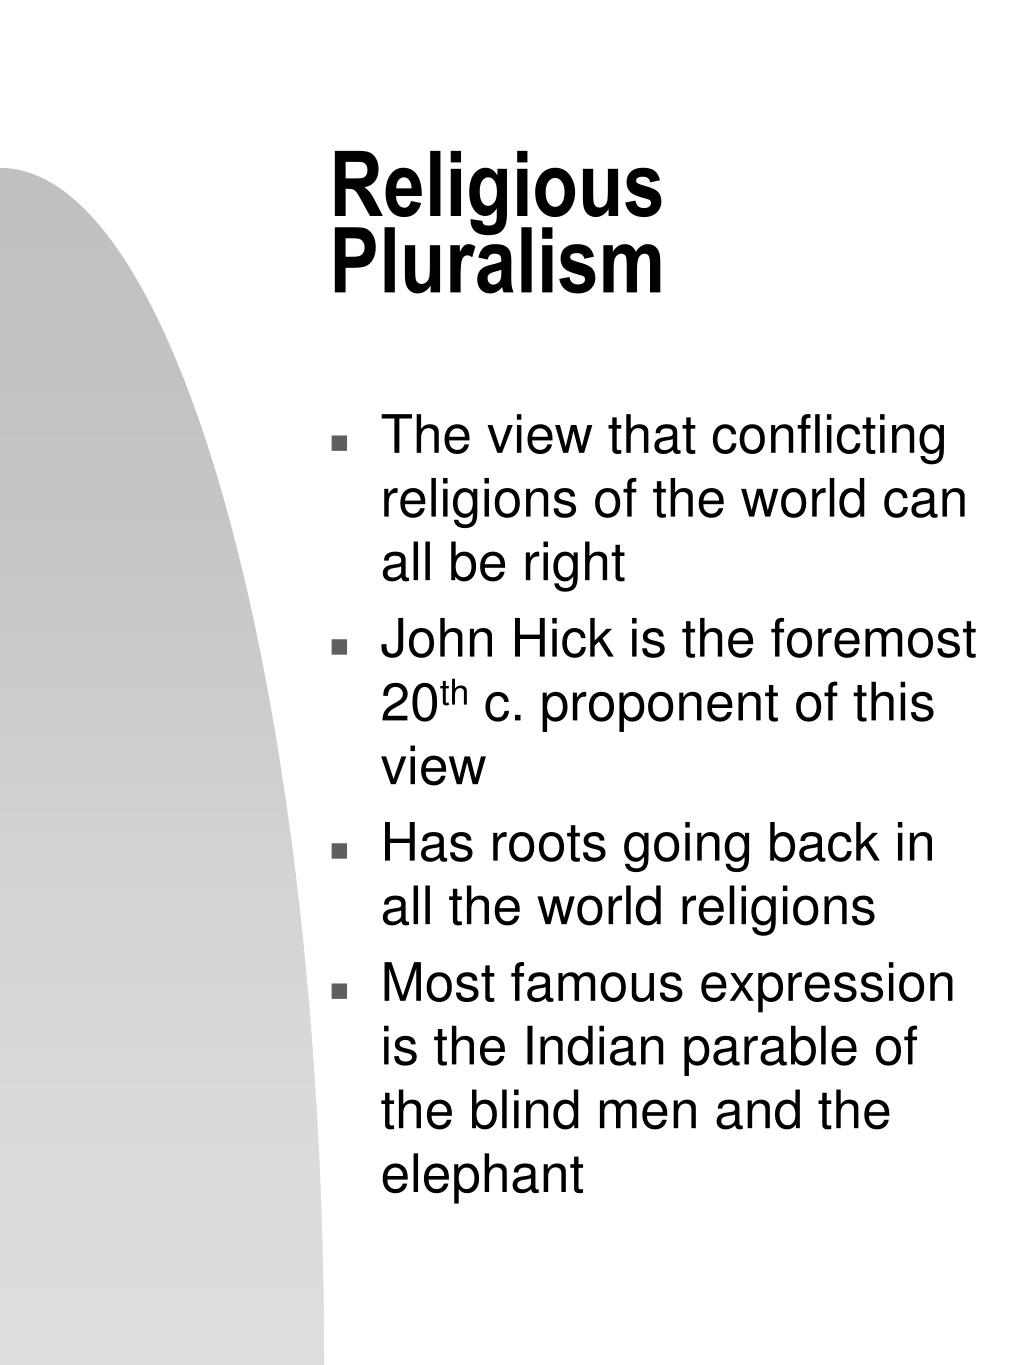 religious pluralism essay How to respond to religious pluralism jonathan dodson others insist there are many ways to god, a view popularly called religious pluralism.